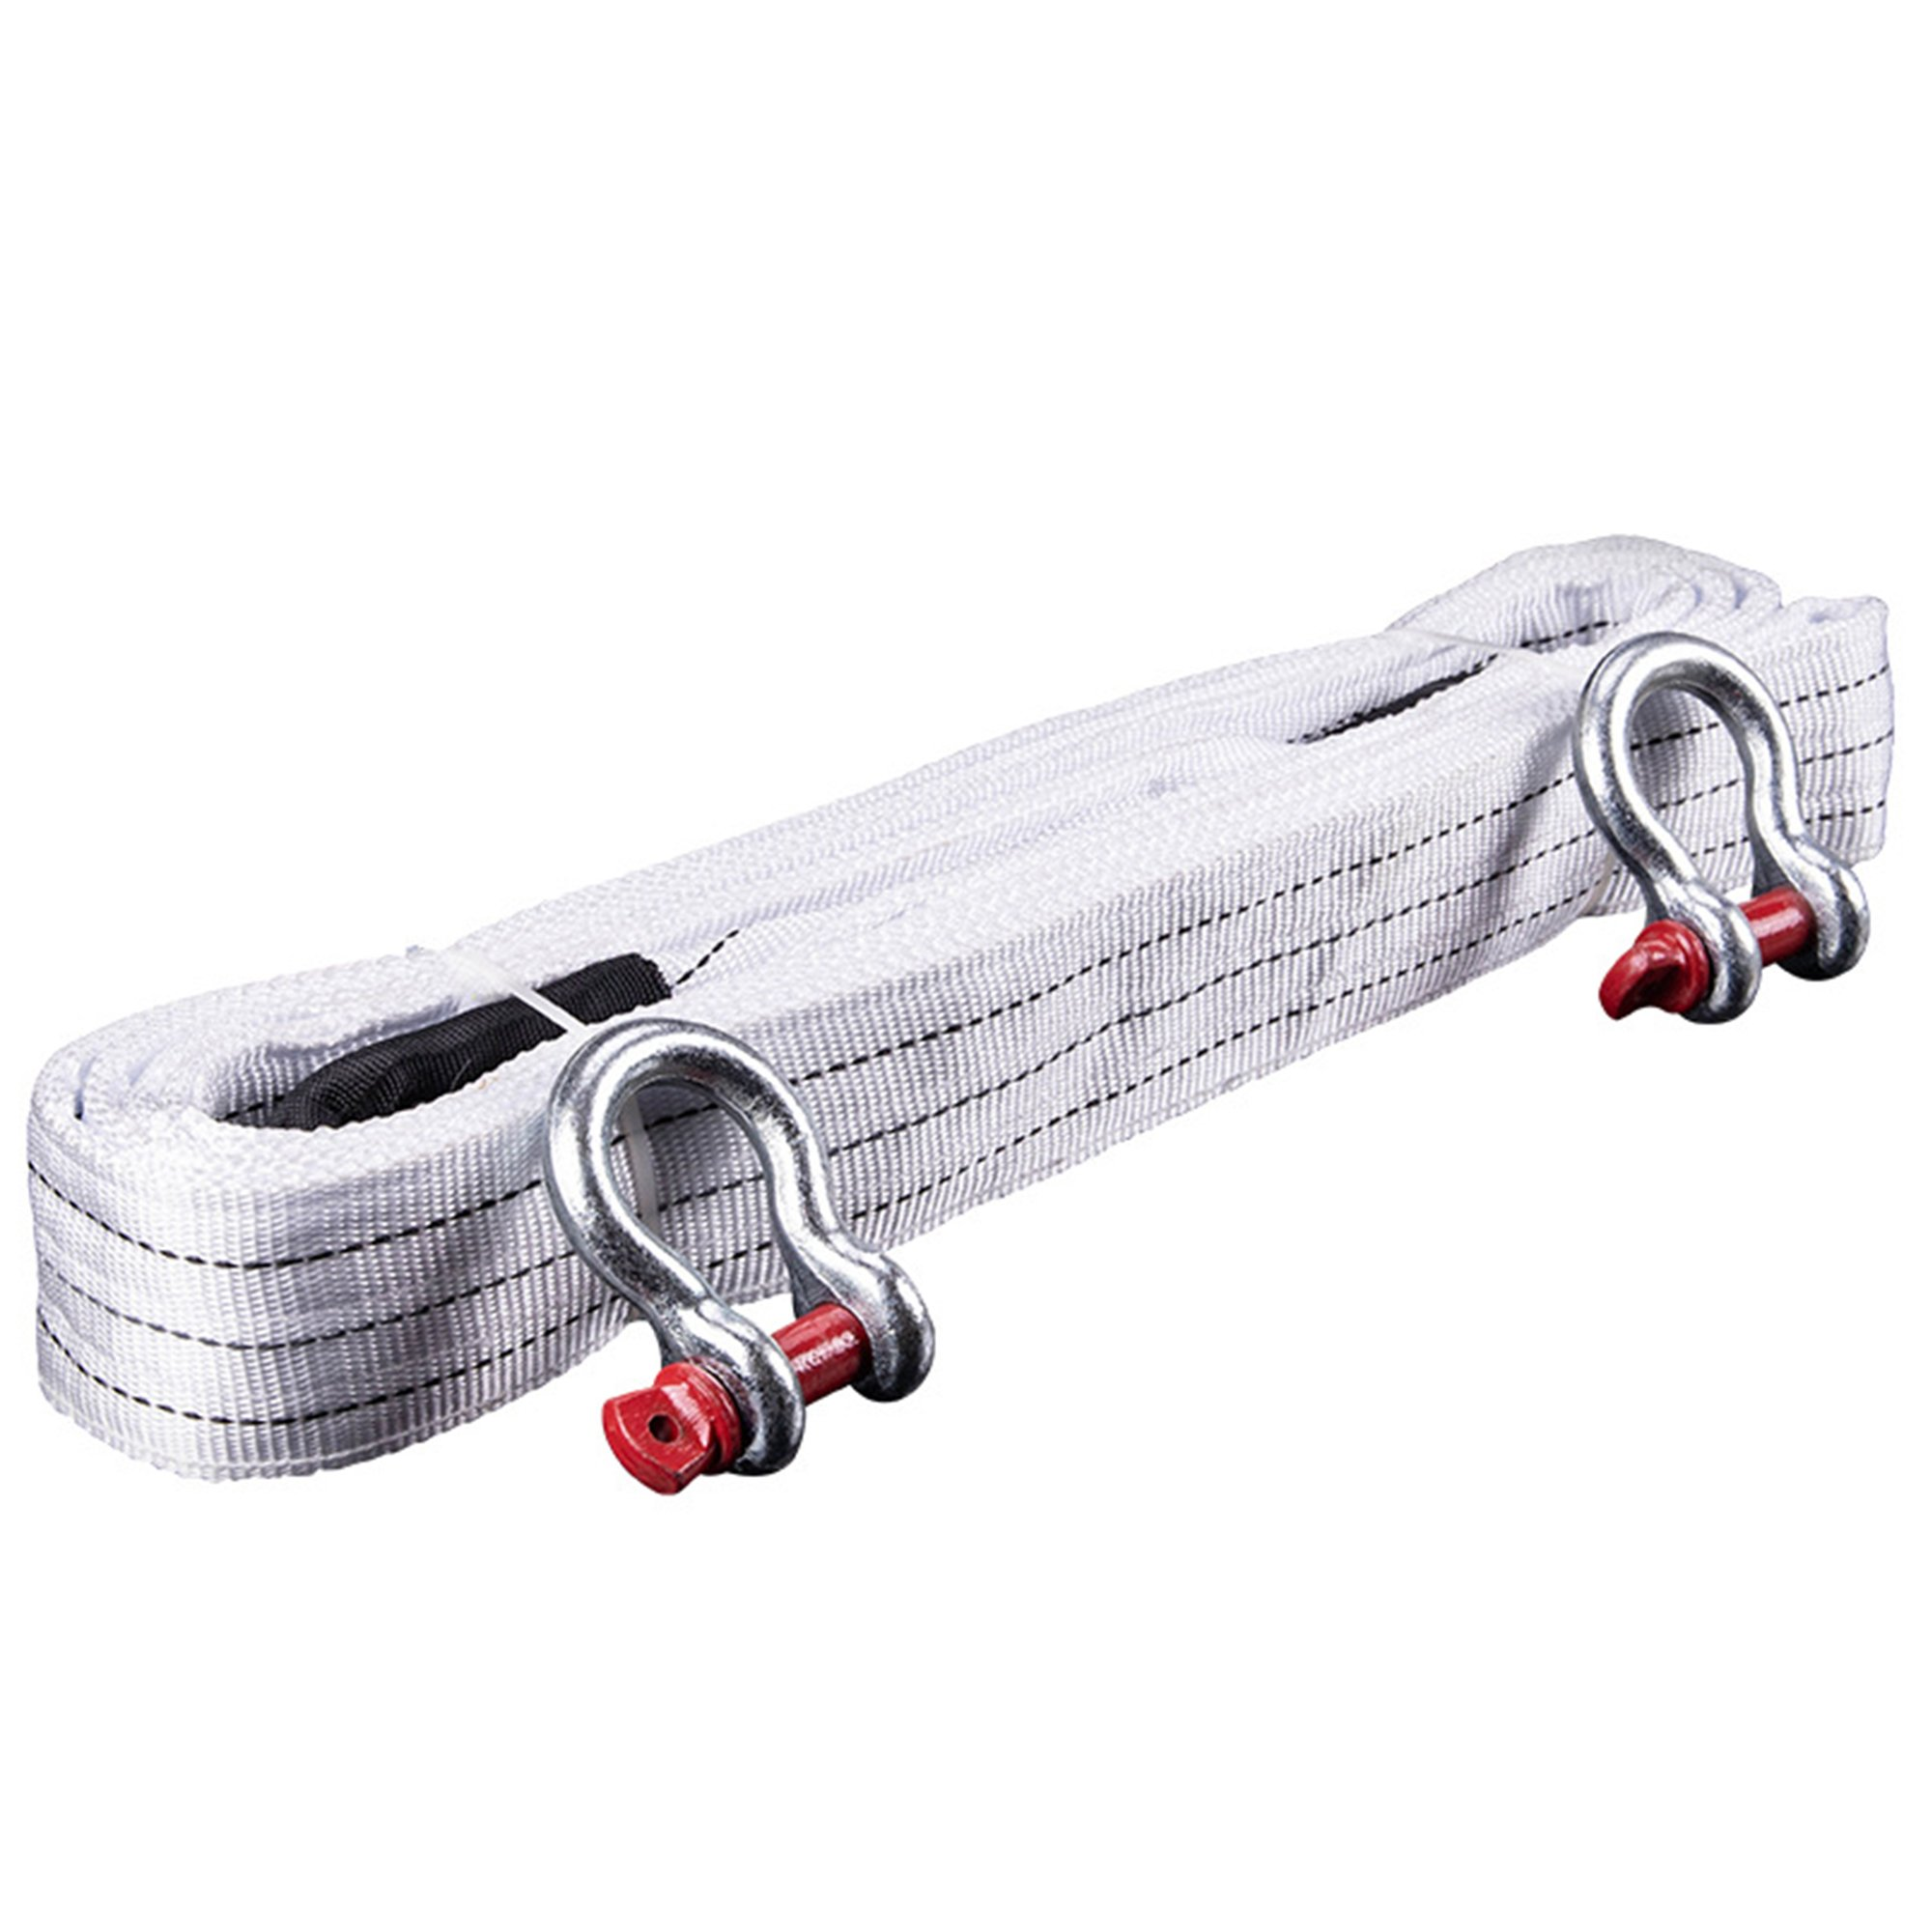 18 Tons Heavy Duty Rope with D Ring Shackle - 5m